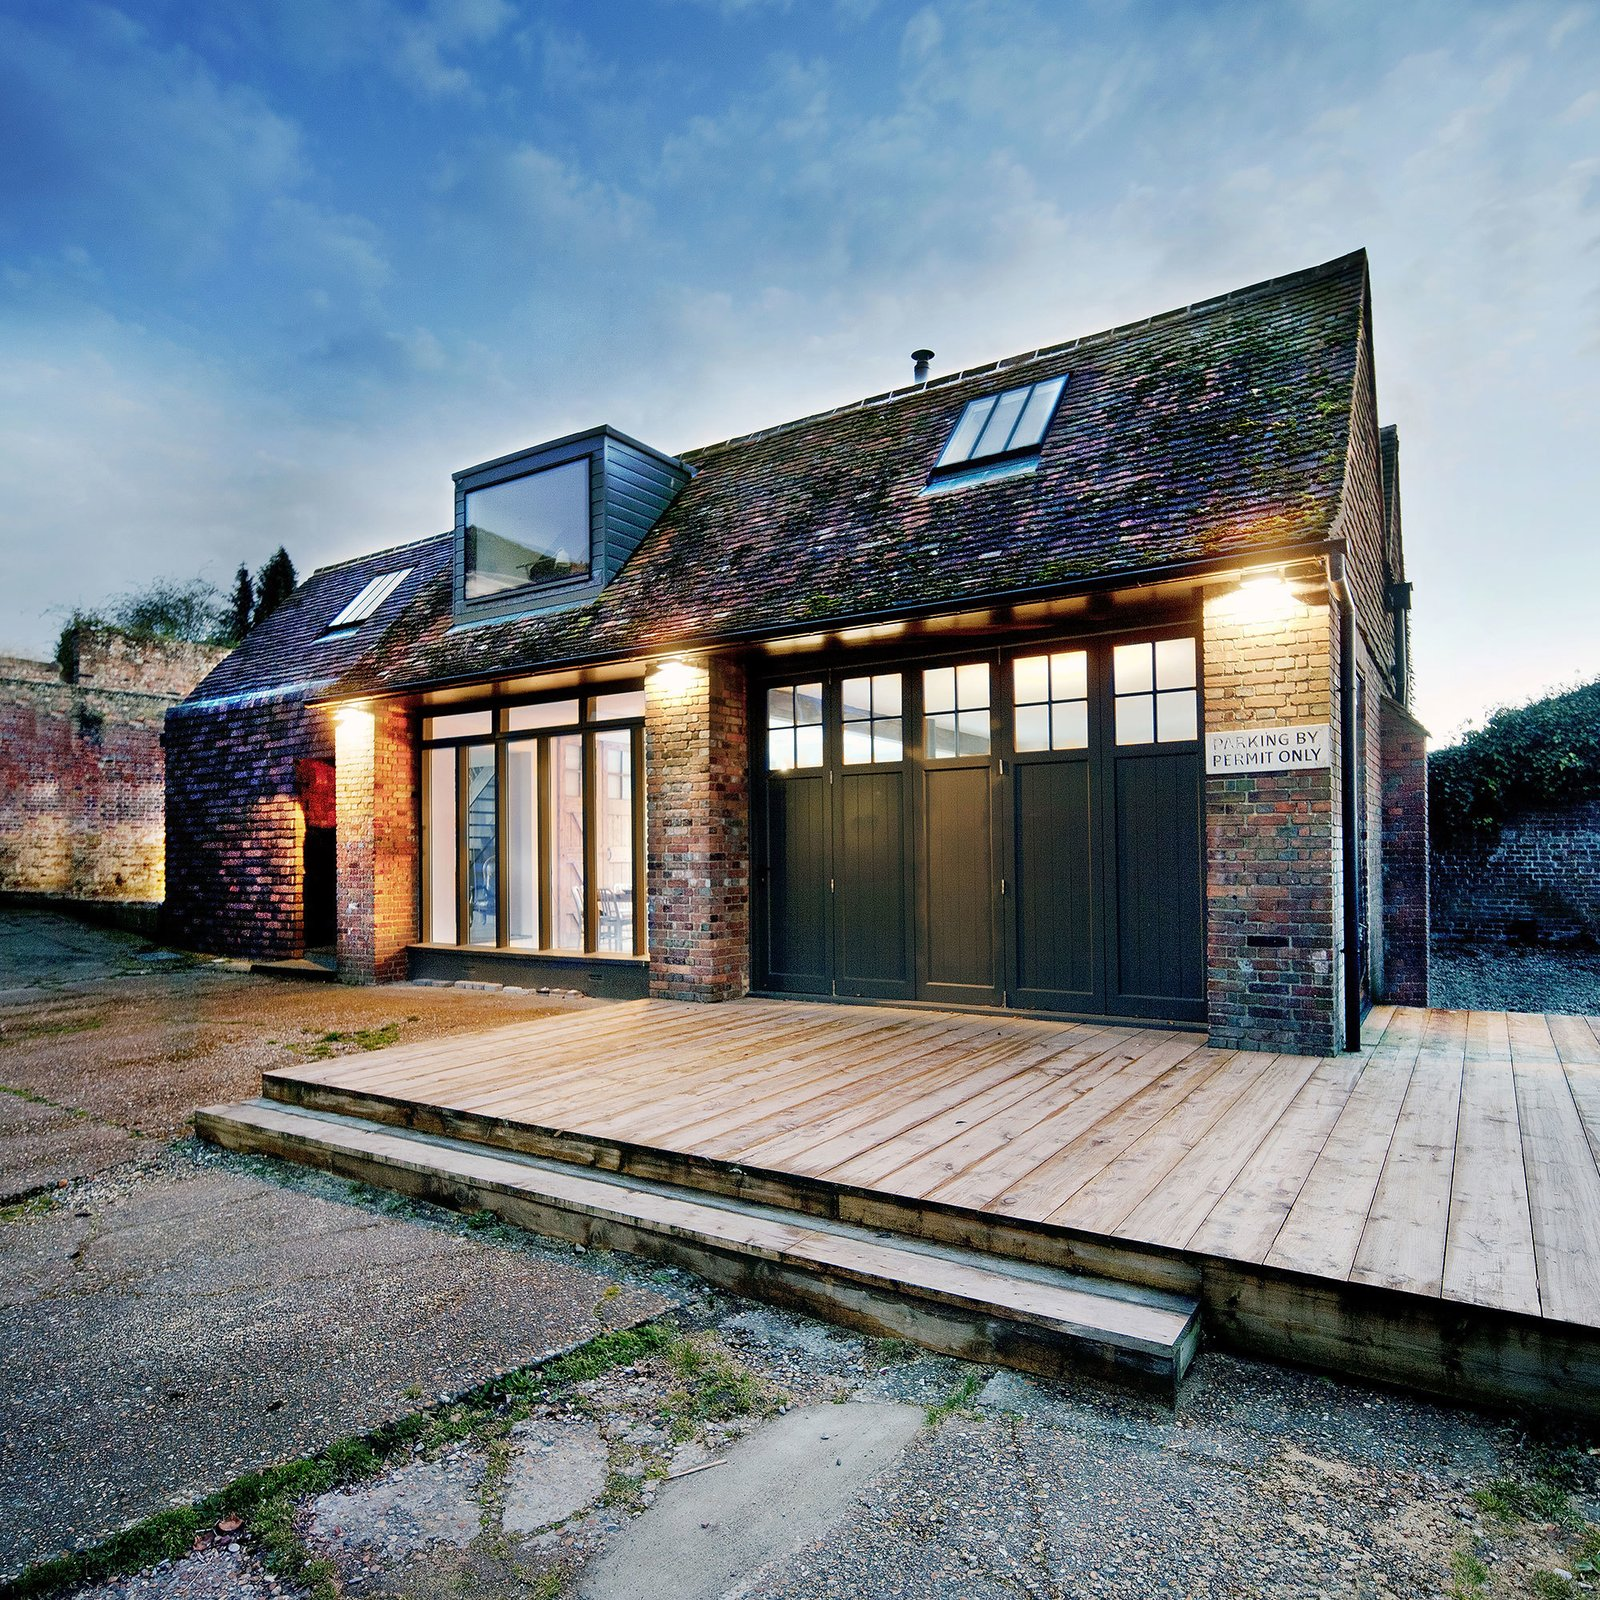 © Vojteck Ketz courtesy of Marta Nowicka & Co.  Photo 1 of 19 in 10 Dwell-Approved, New-Old Homes in the UK from Rescue & Revival